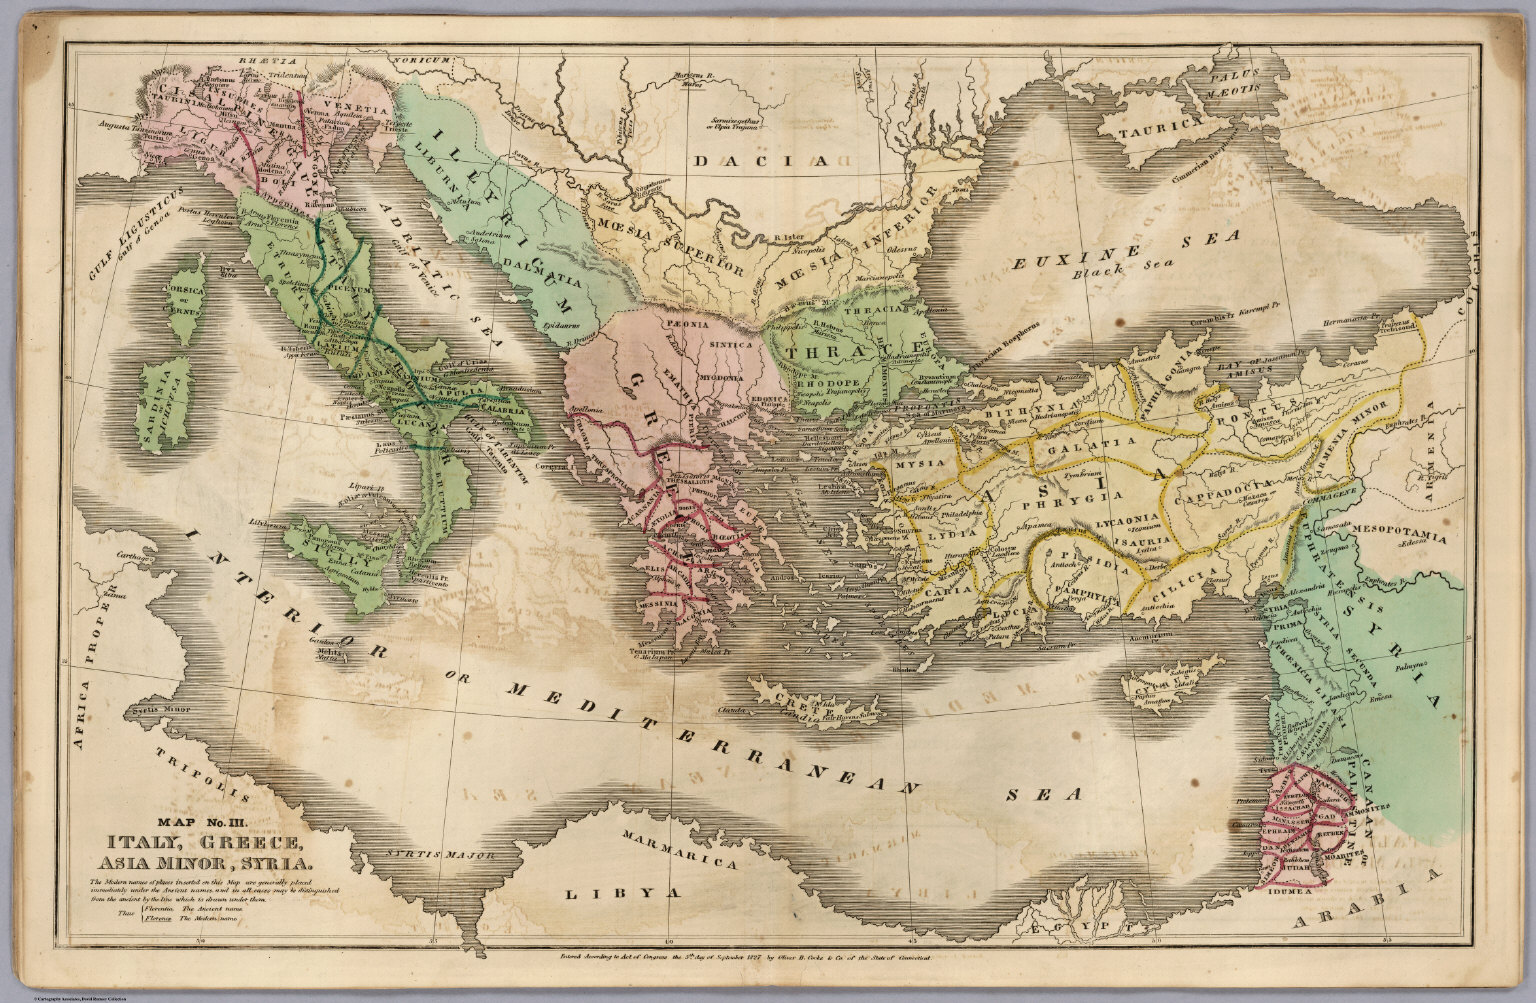 Map No. III. Italy, Greece, Asia Minor, Syria